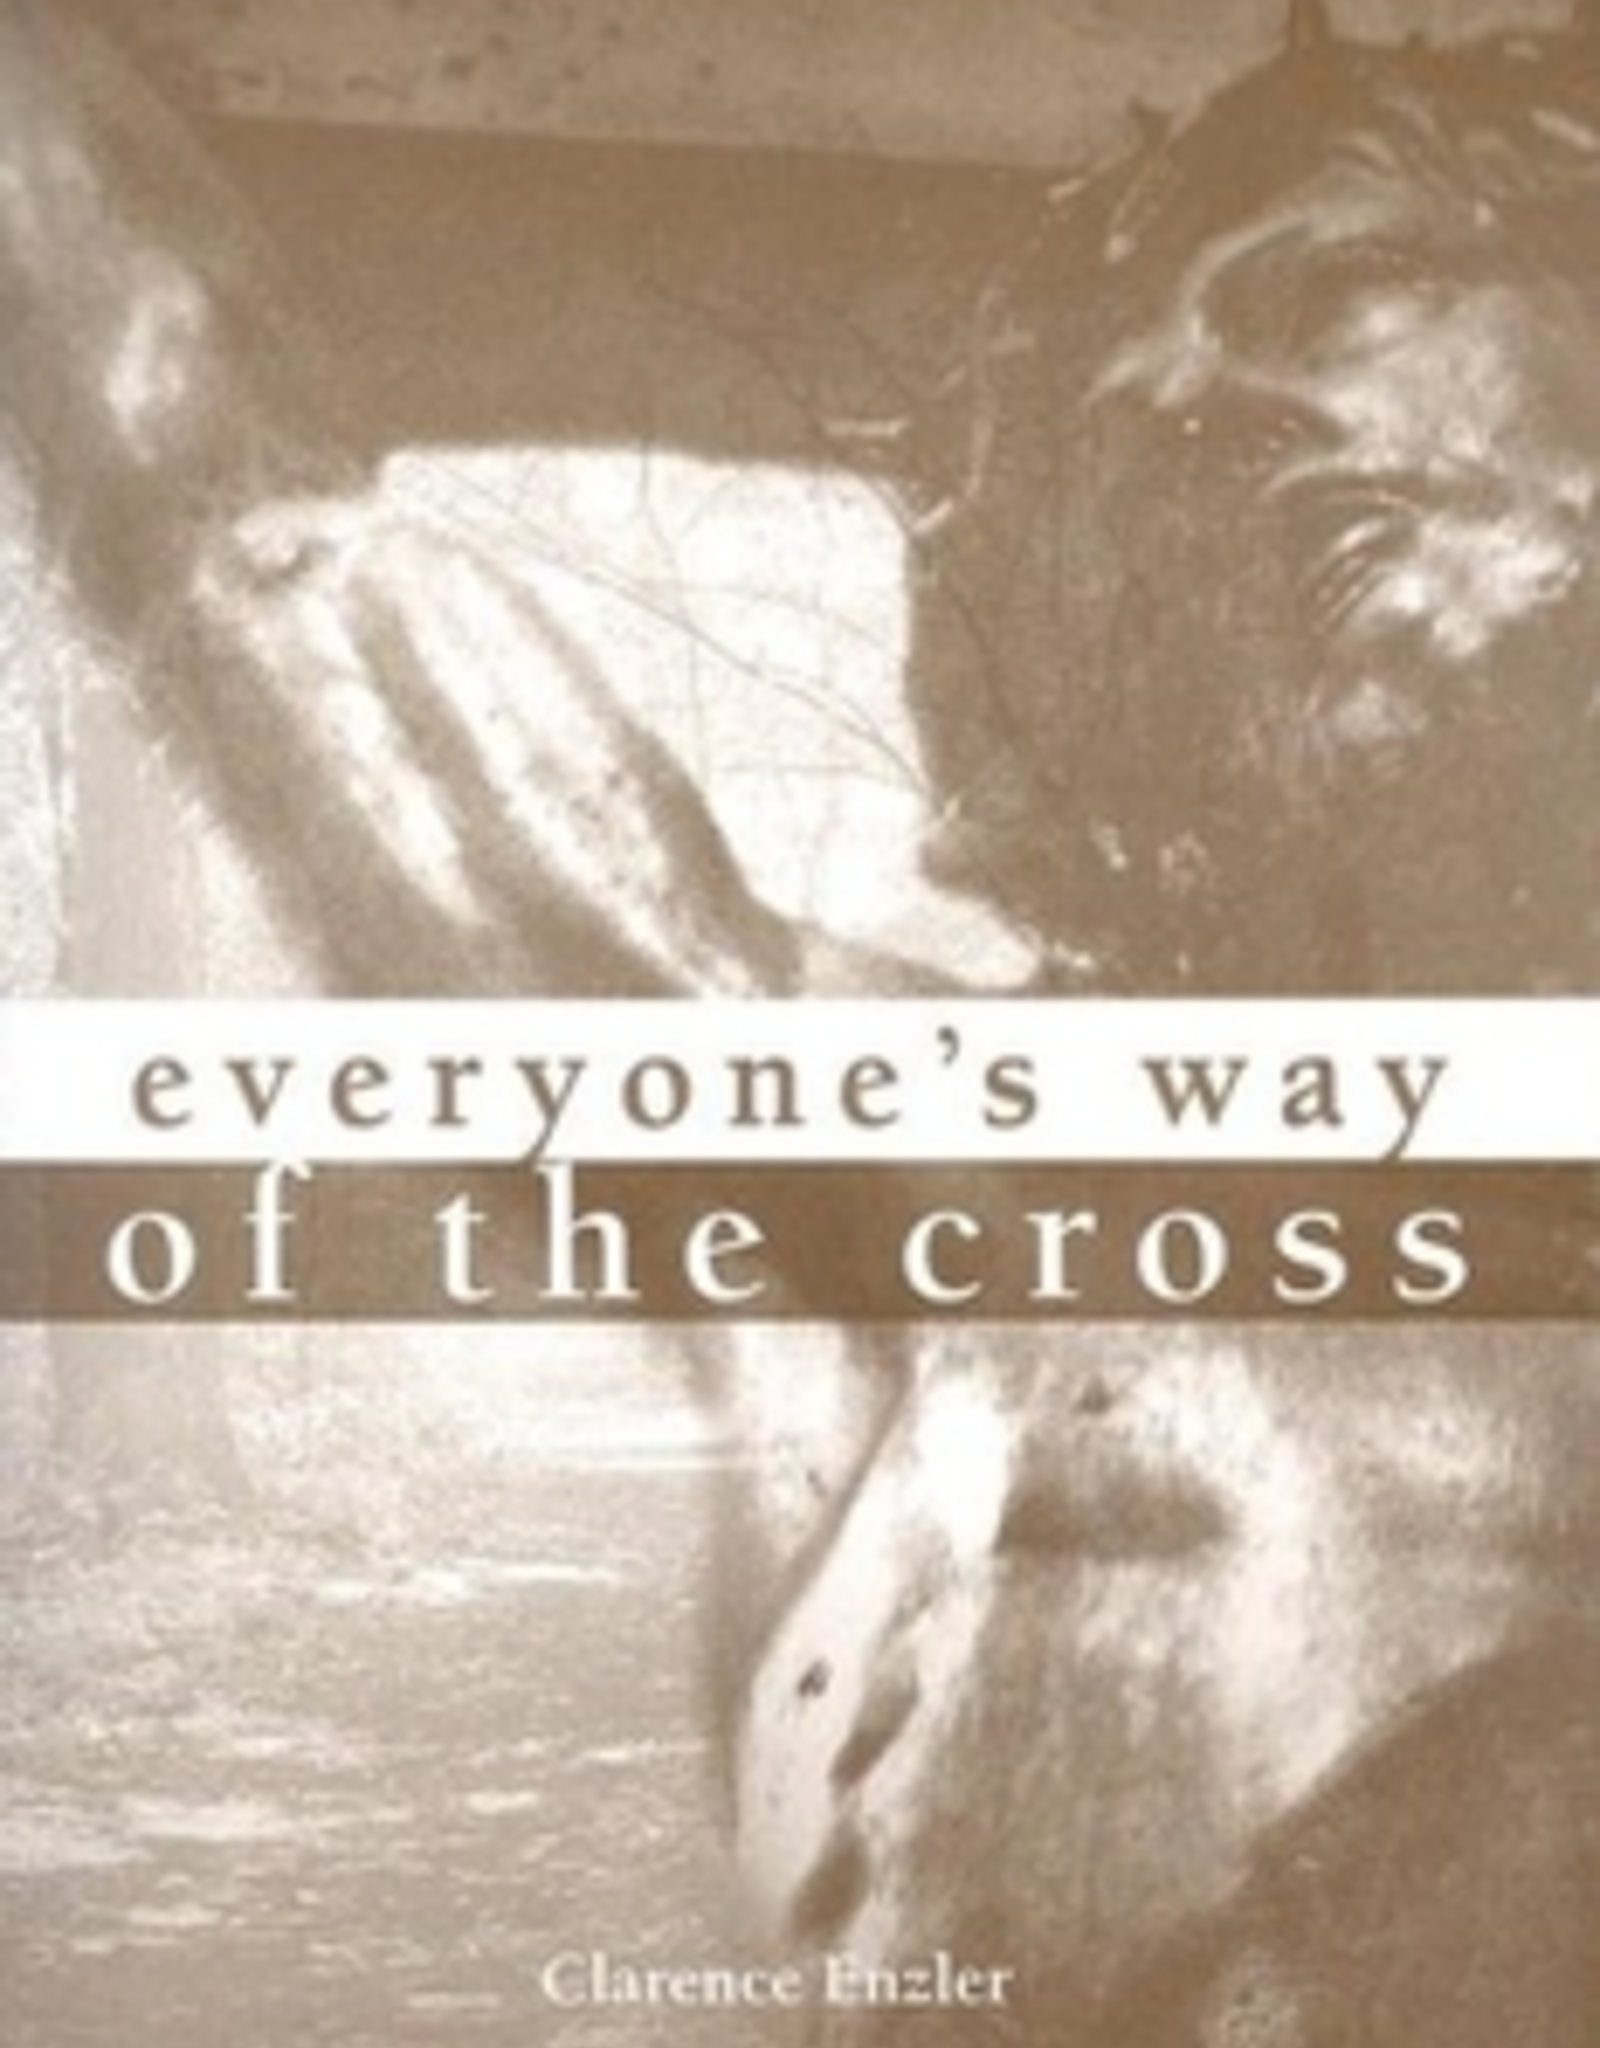 Ave Maria Press Everyone's Way of the Cross (Large Print), by Clarence Enzler